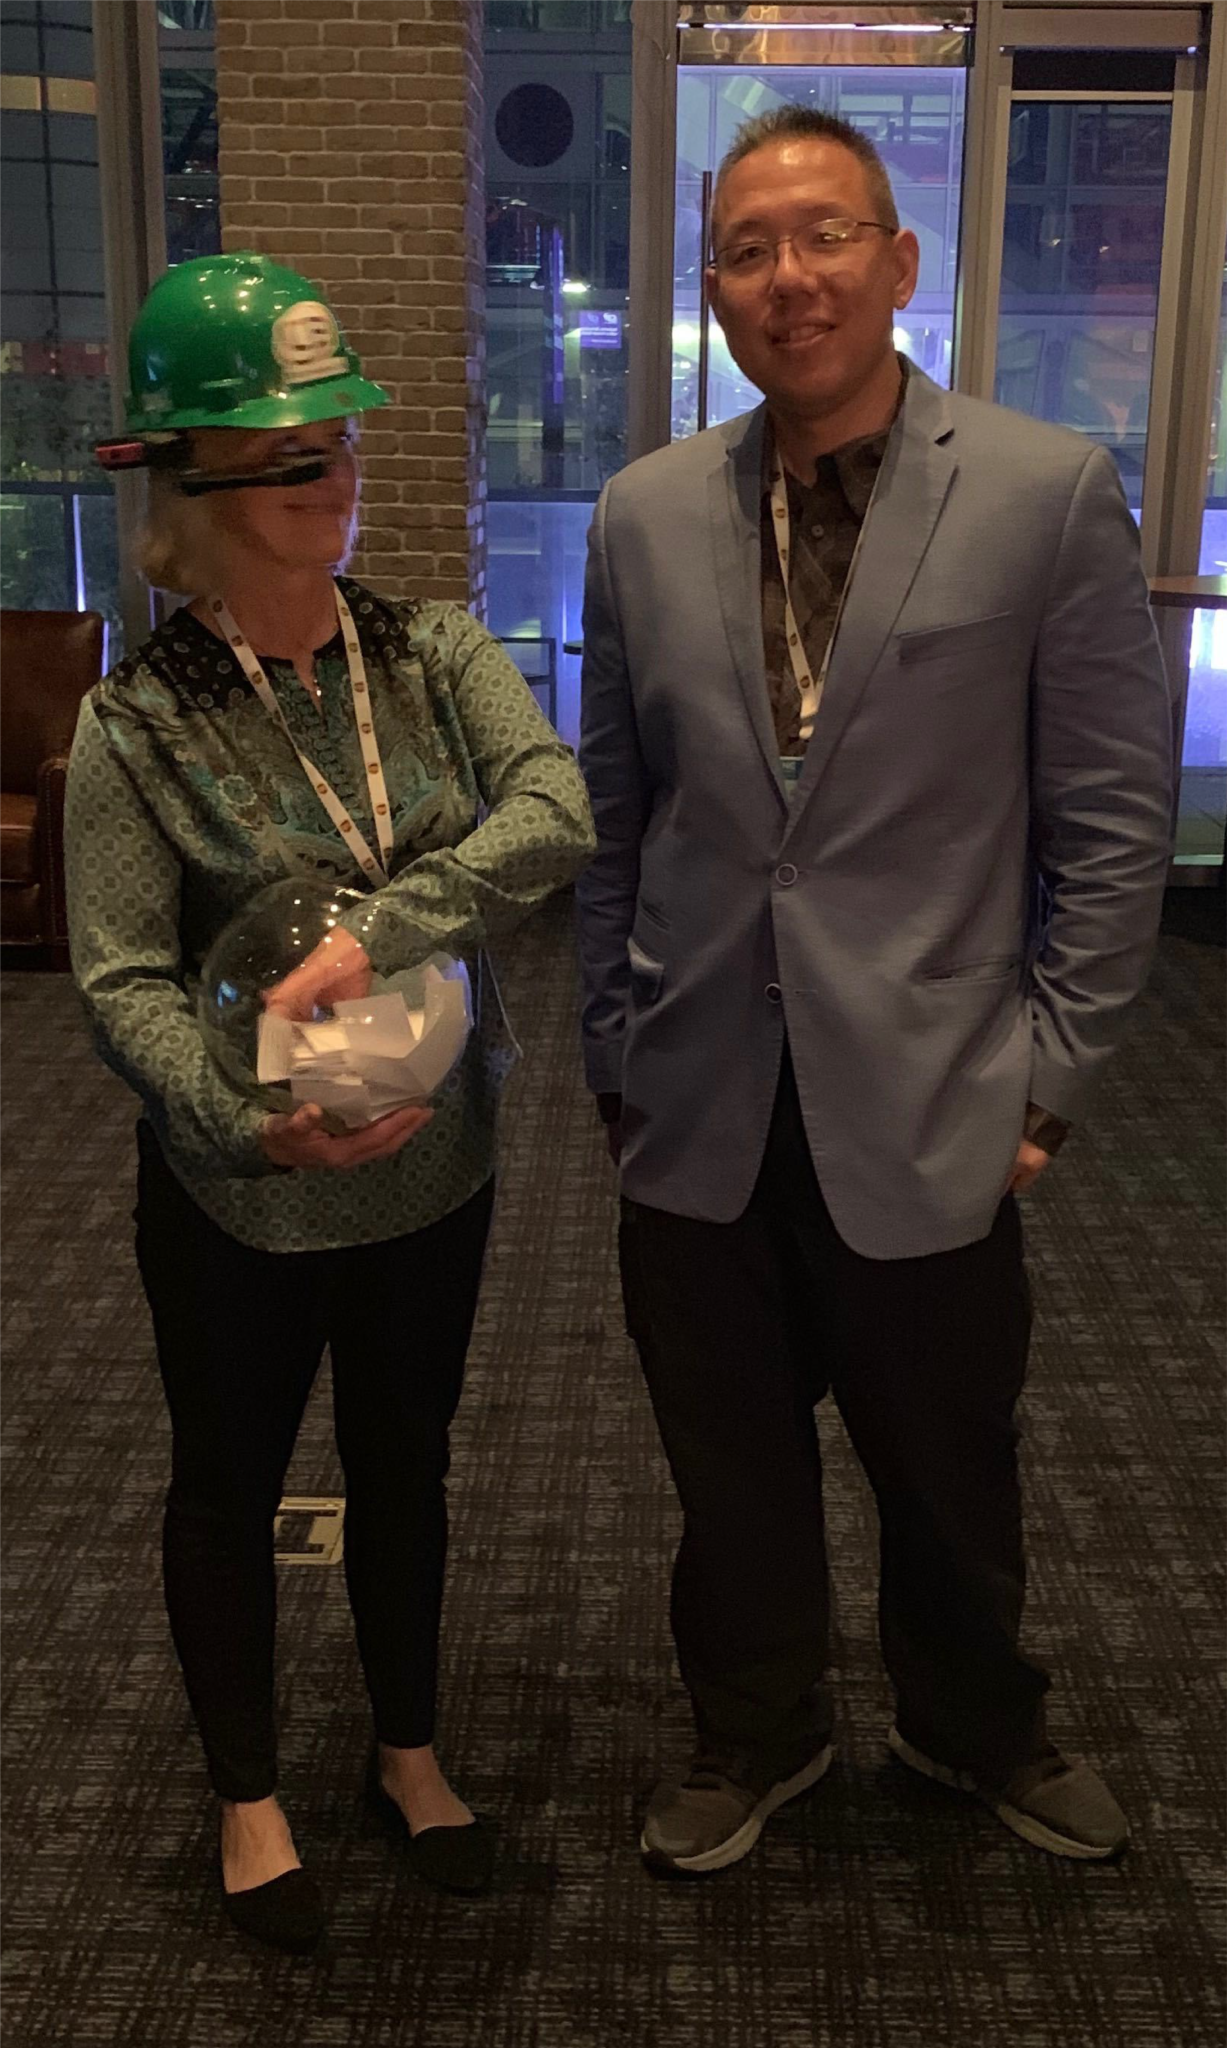 CB Technologies demonstrating RealWear's HMT-1 augmented reality headset